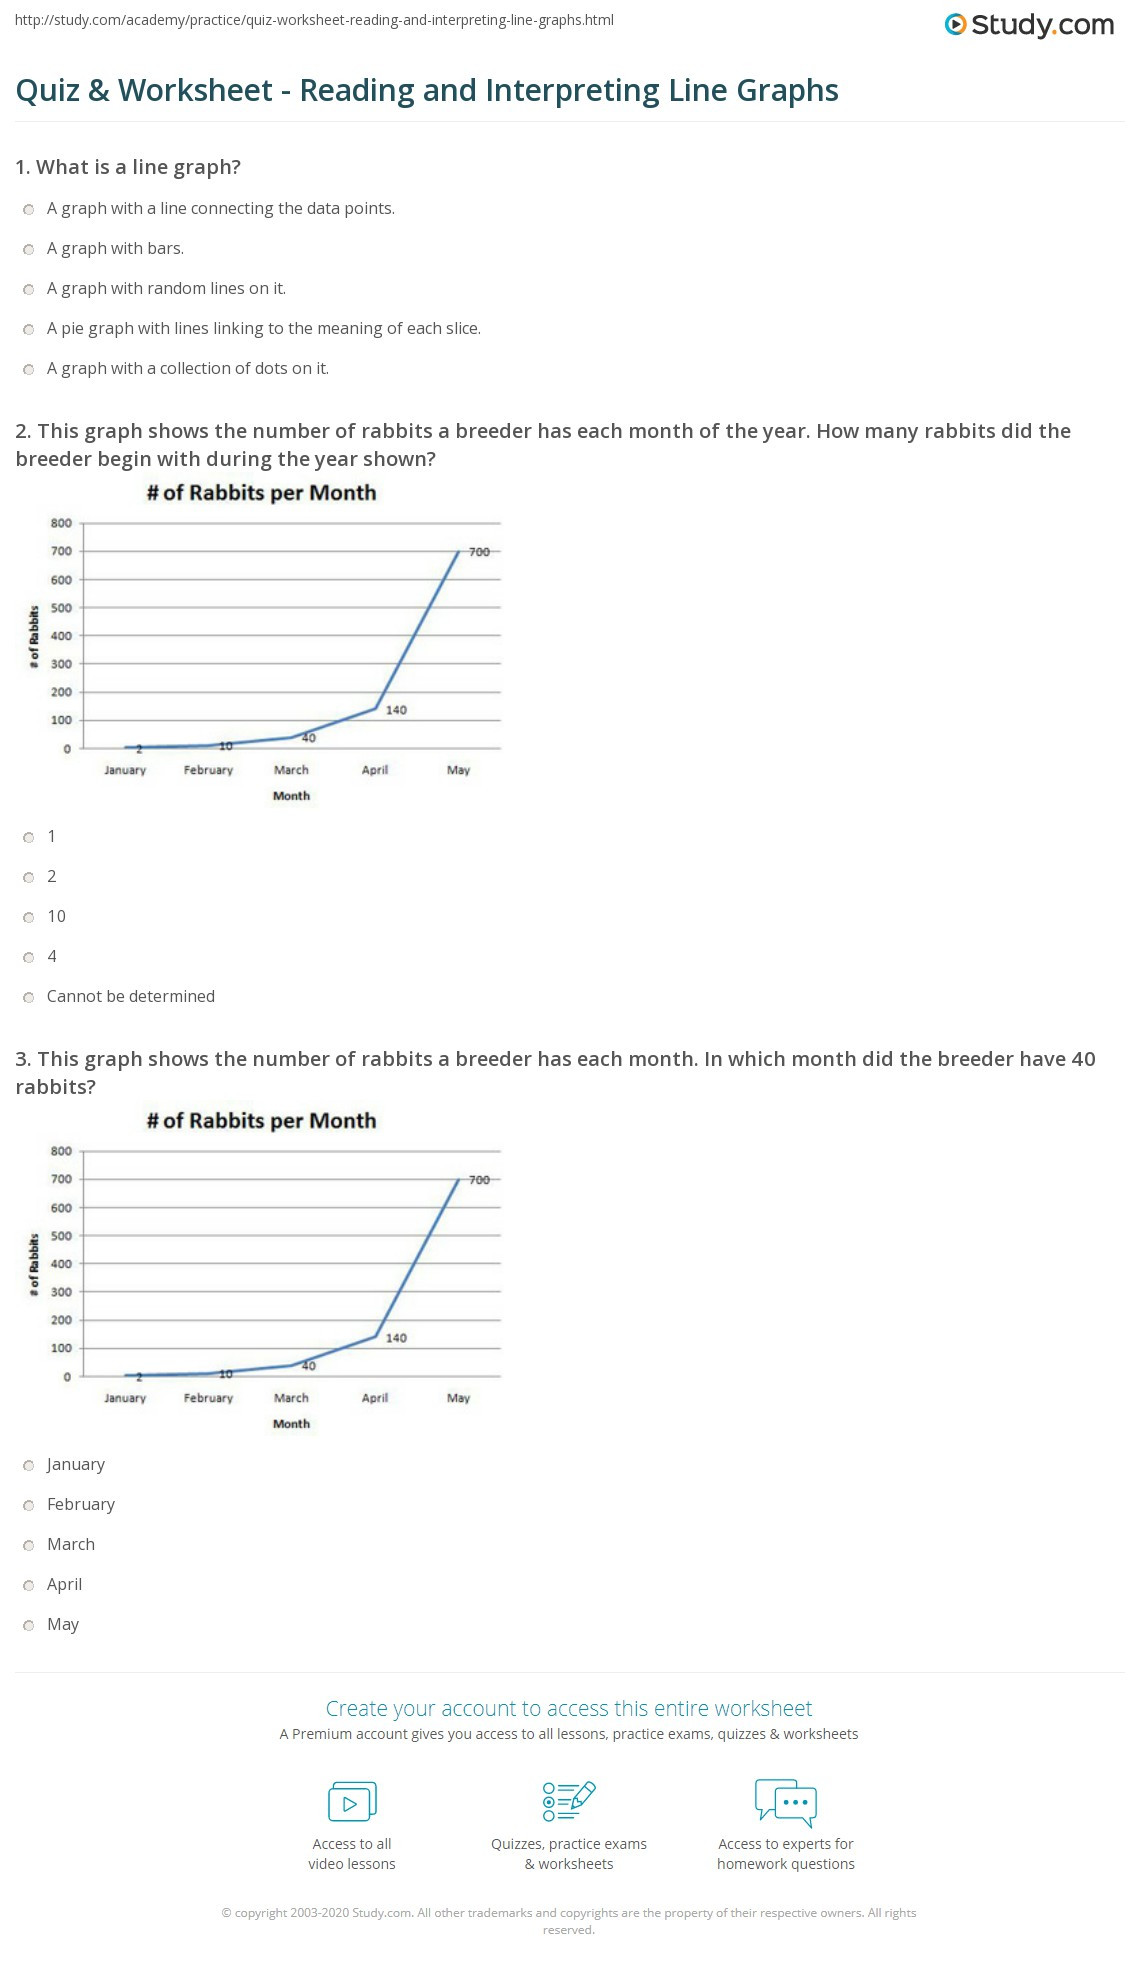 Reading Graphs Worksheets Middle School Quiz & Worksheet Reading and Interpreting Line Graphs